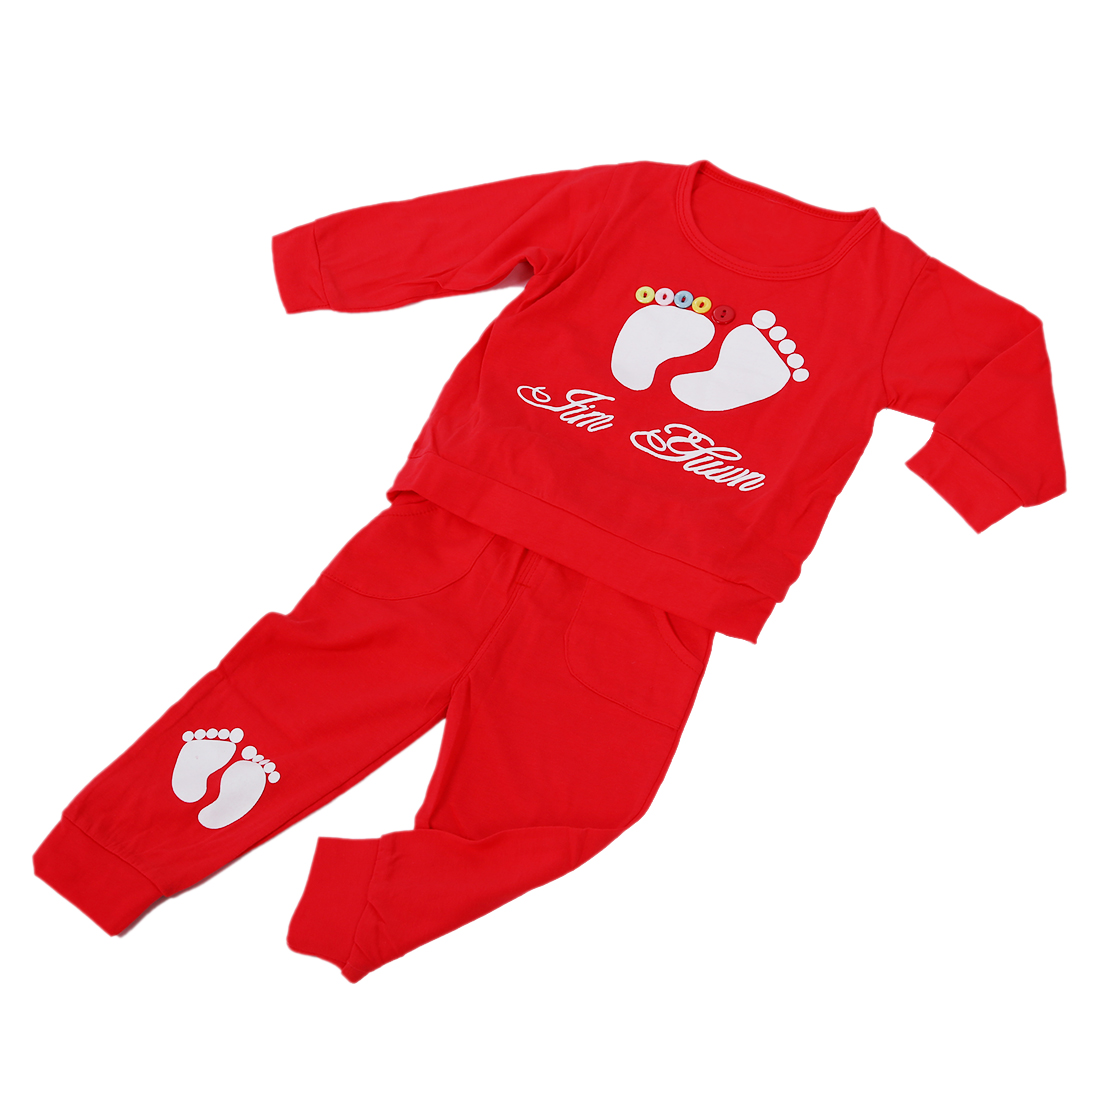 ABWE Best Sale High Quality 100% Cotton baby clothing set,Toddlers children set,baby boys girls 2 pcs Footprints ,Hot sale-Red